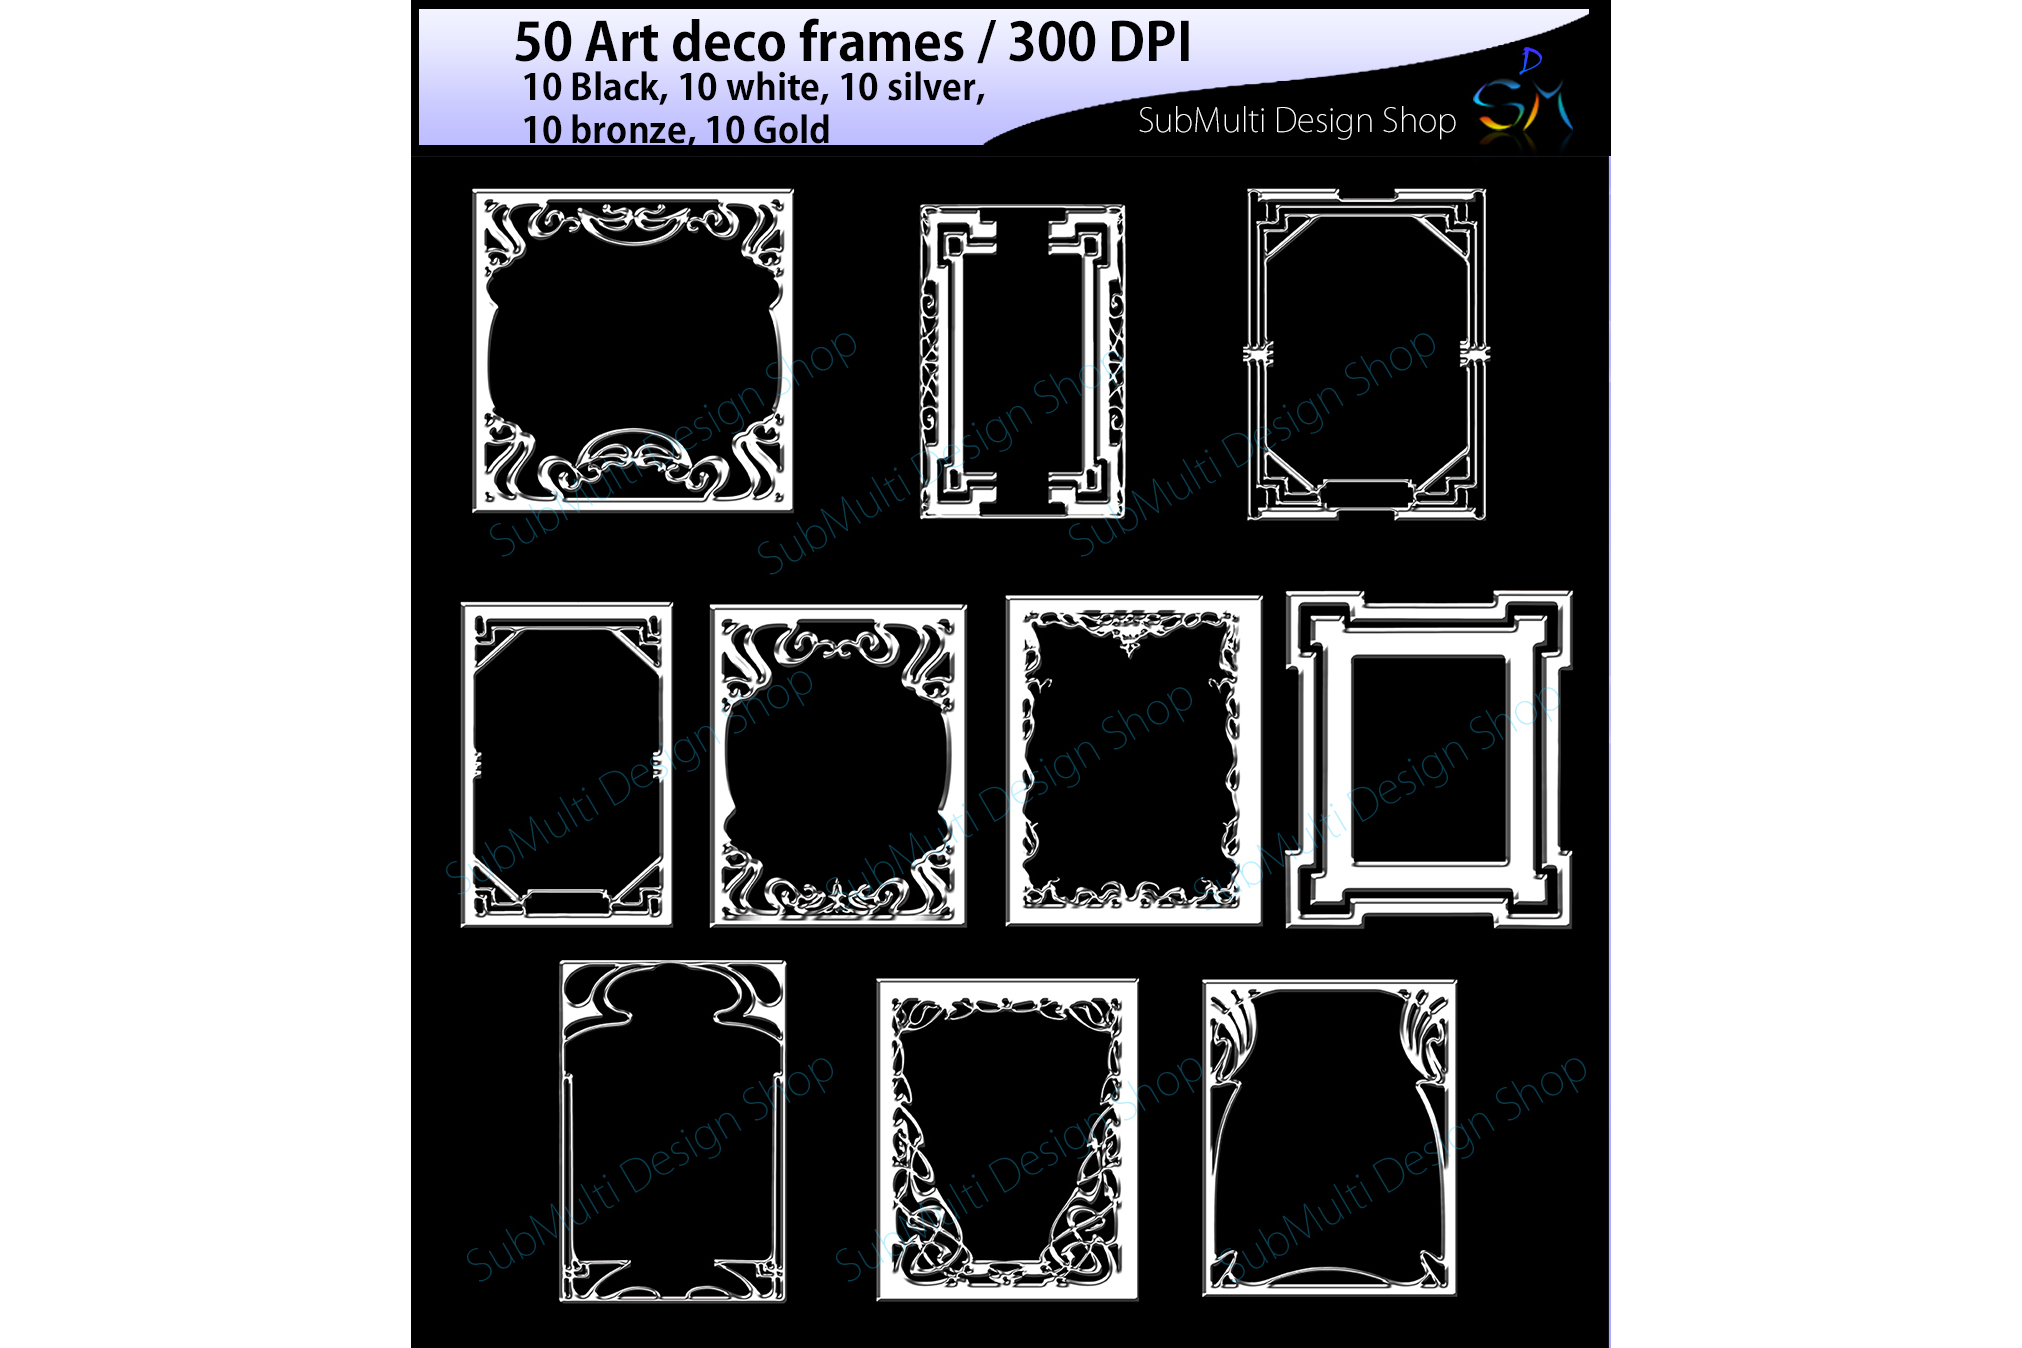 art deco frames / art deco frames clipart / art deco frames silhouette / art deco gold frames / art deco silver frame / High Quality example image 4